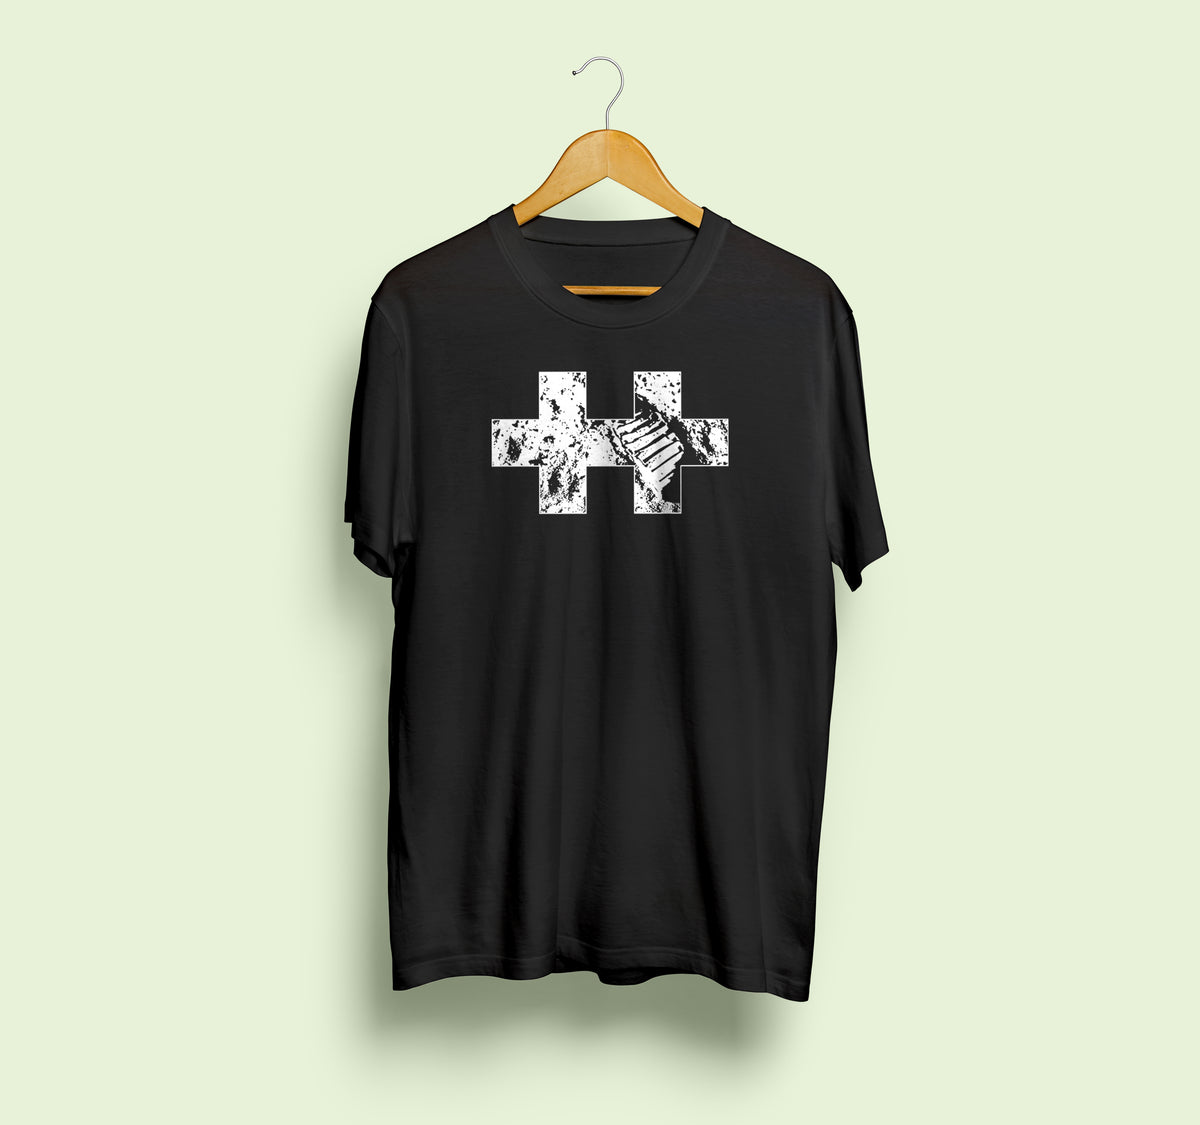 Plus-Plus Black Moon T-Shirt